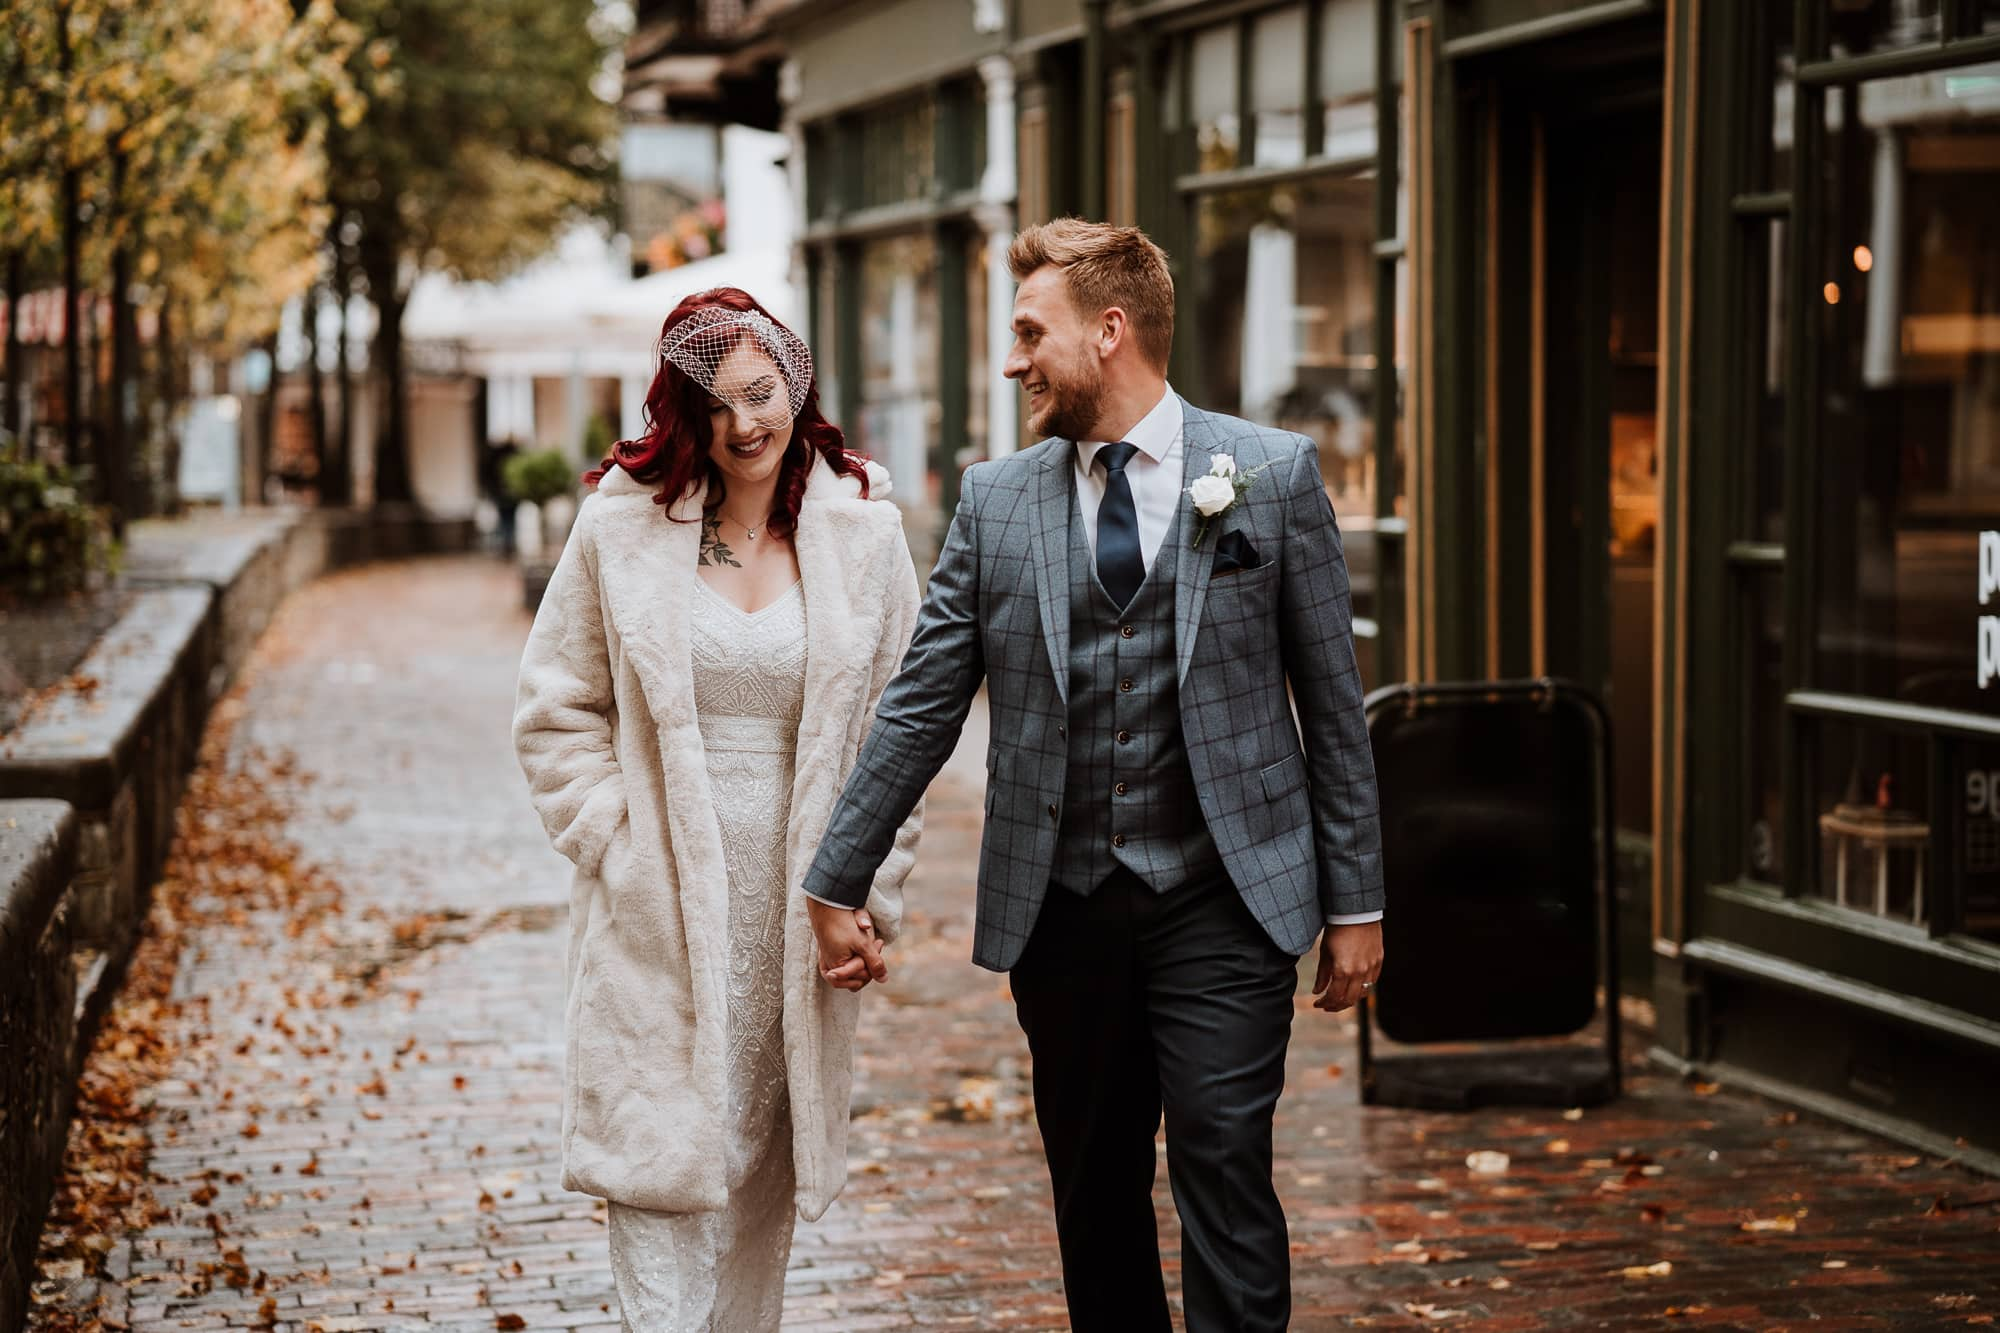 Bride and Groom walking during their Wedding portraits in The Pantiles